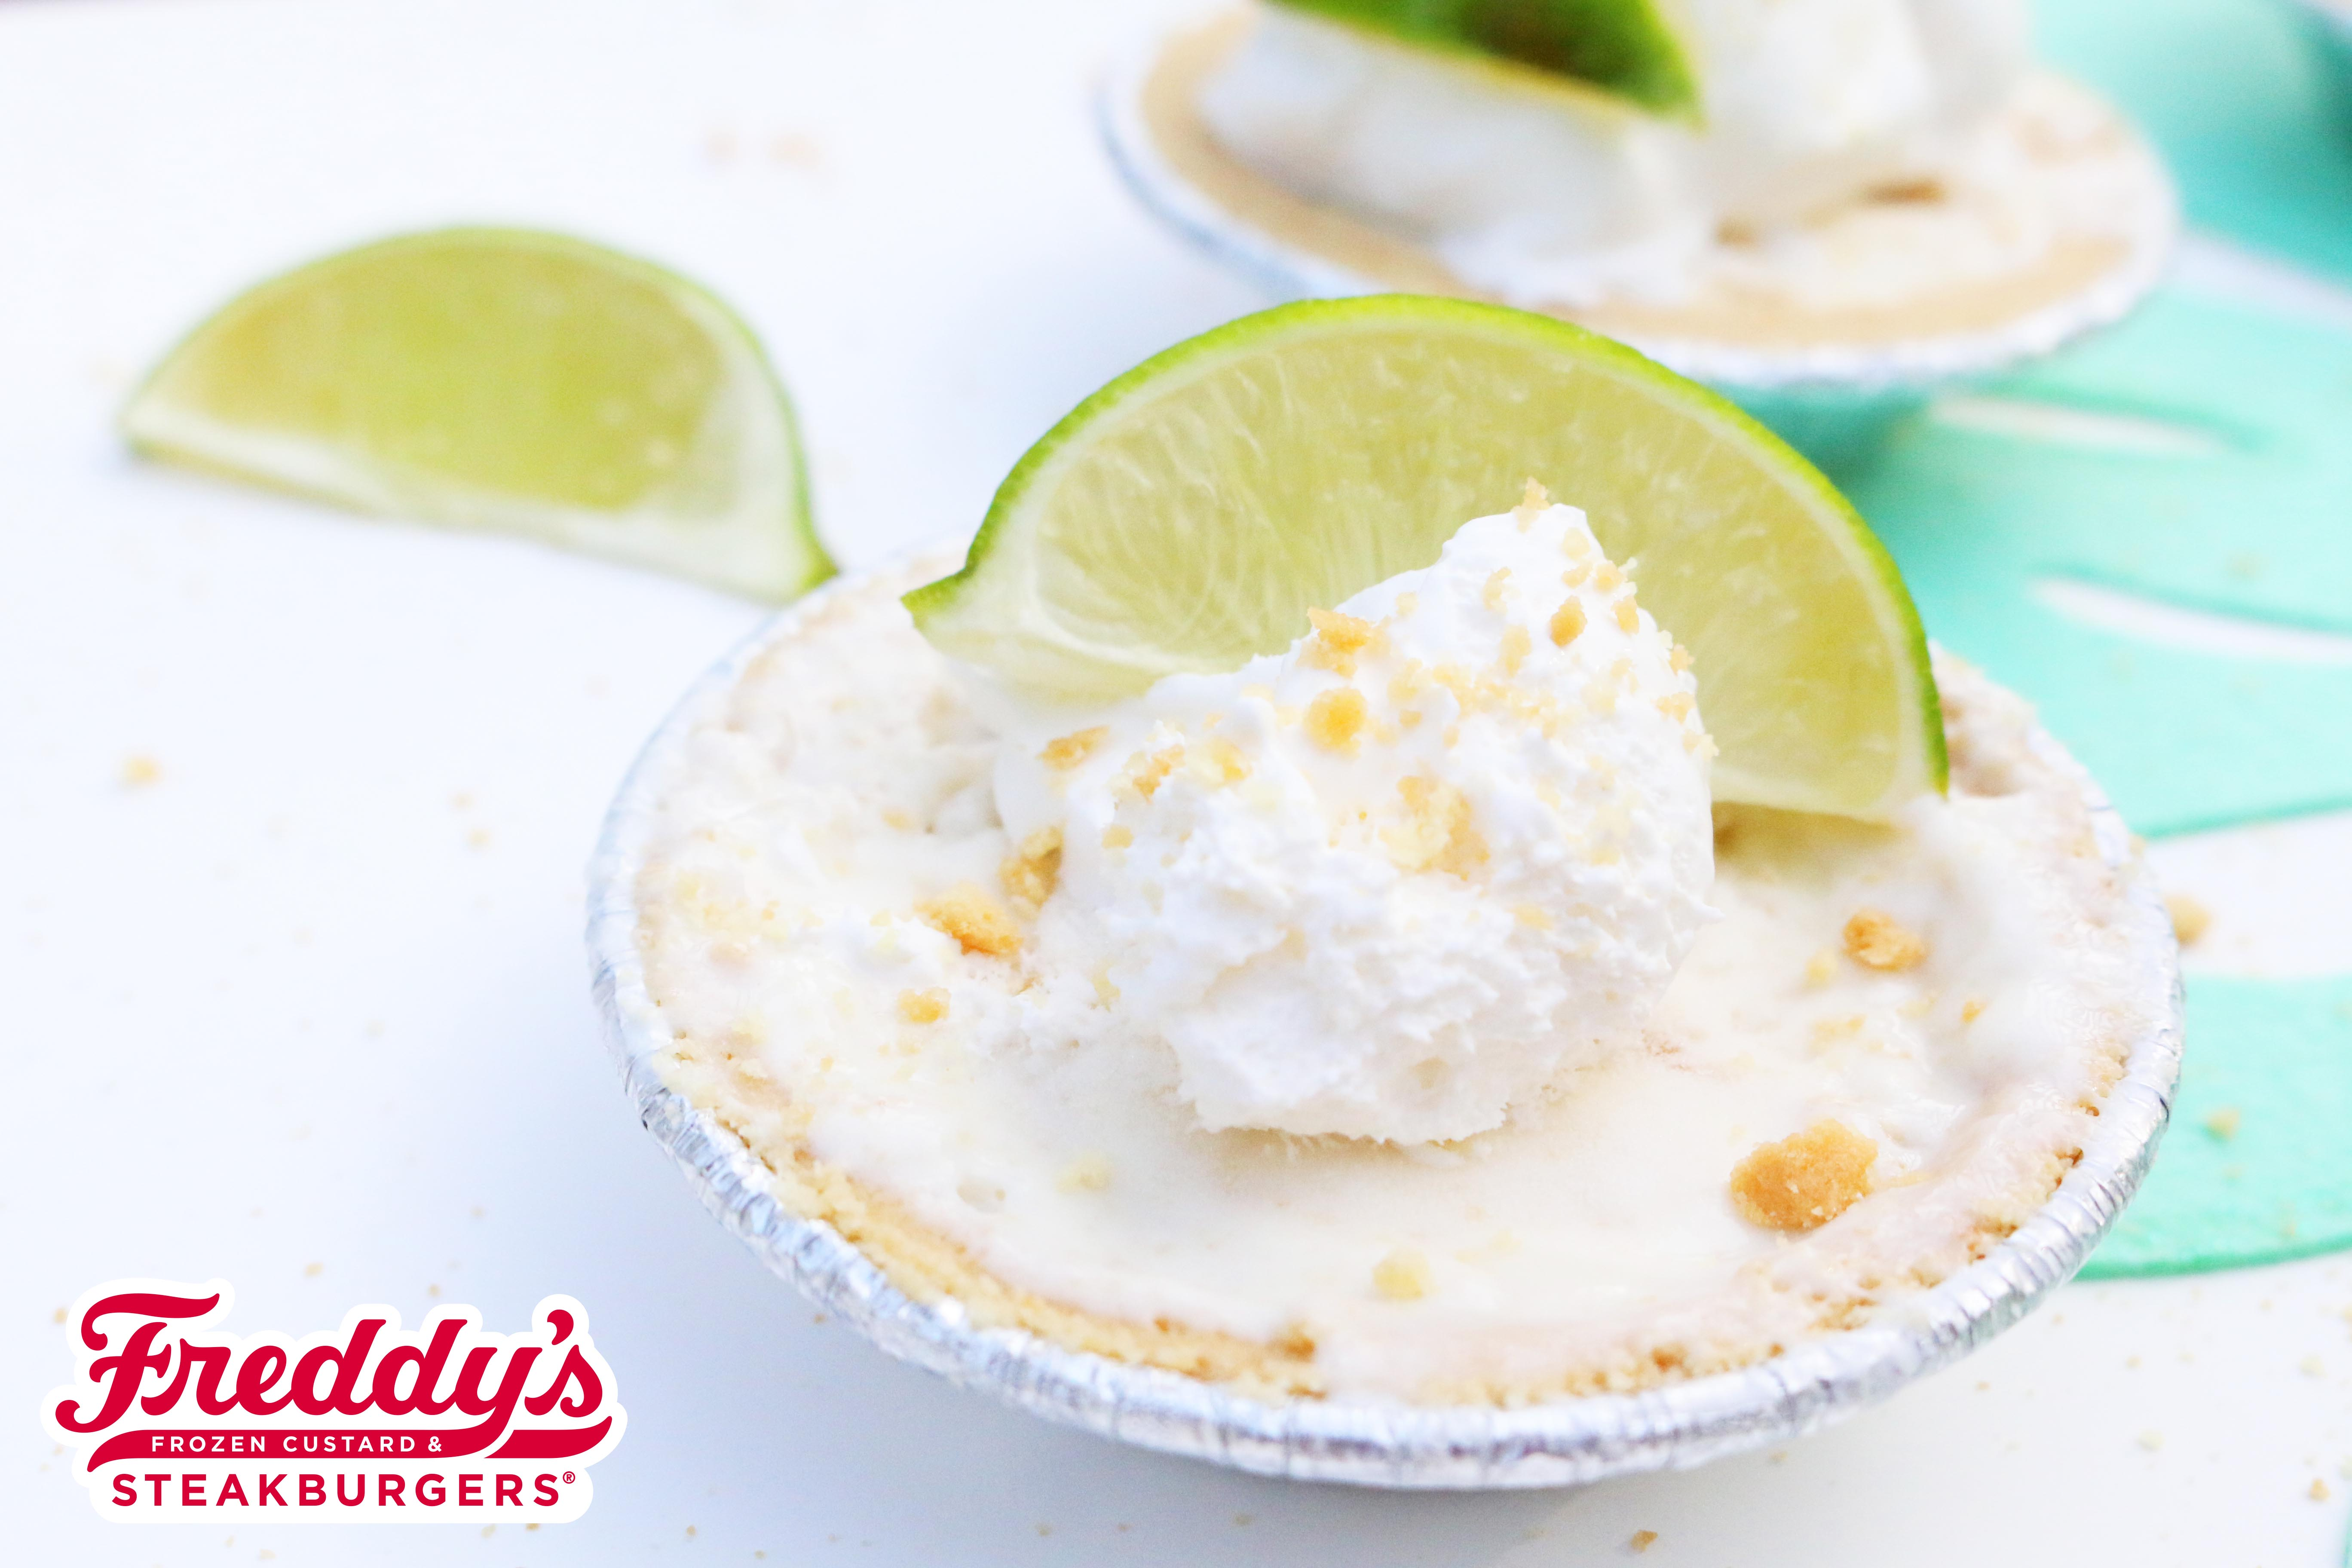 Mini Key Lime Pies filled with Freddy's Key Lime Custard